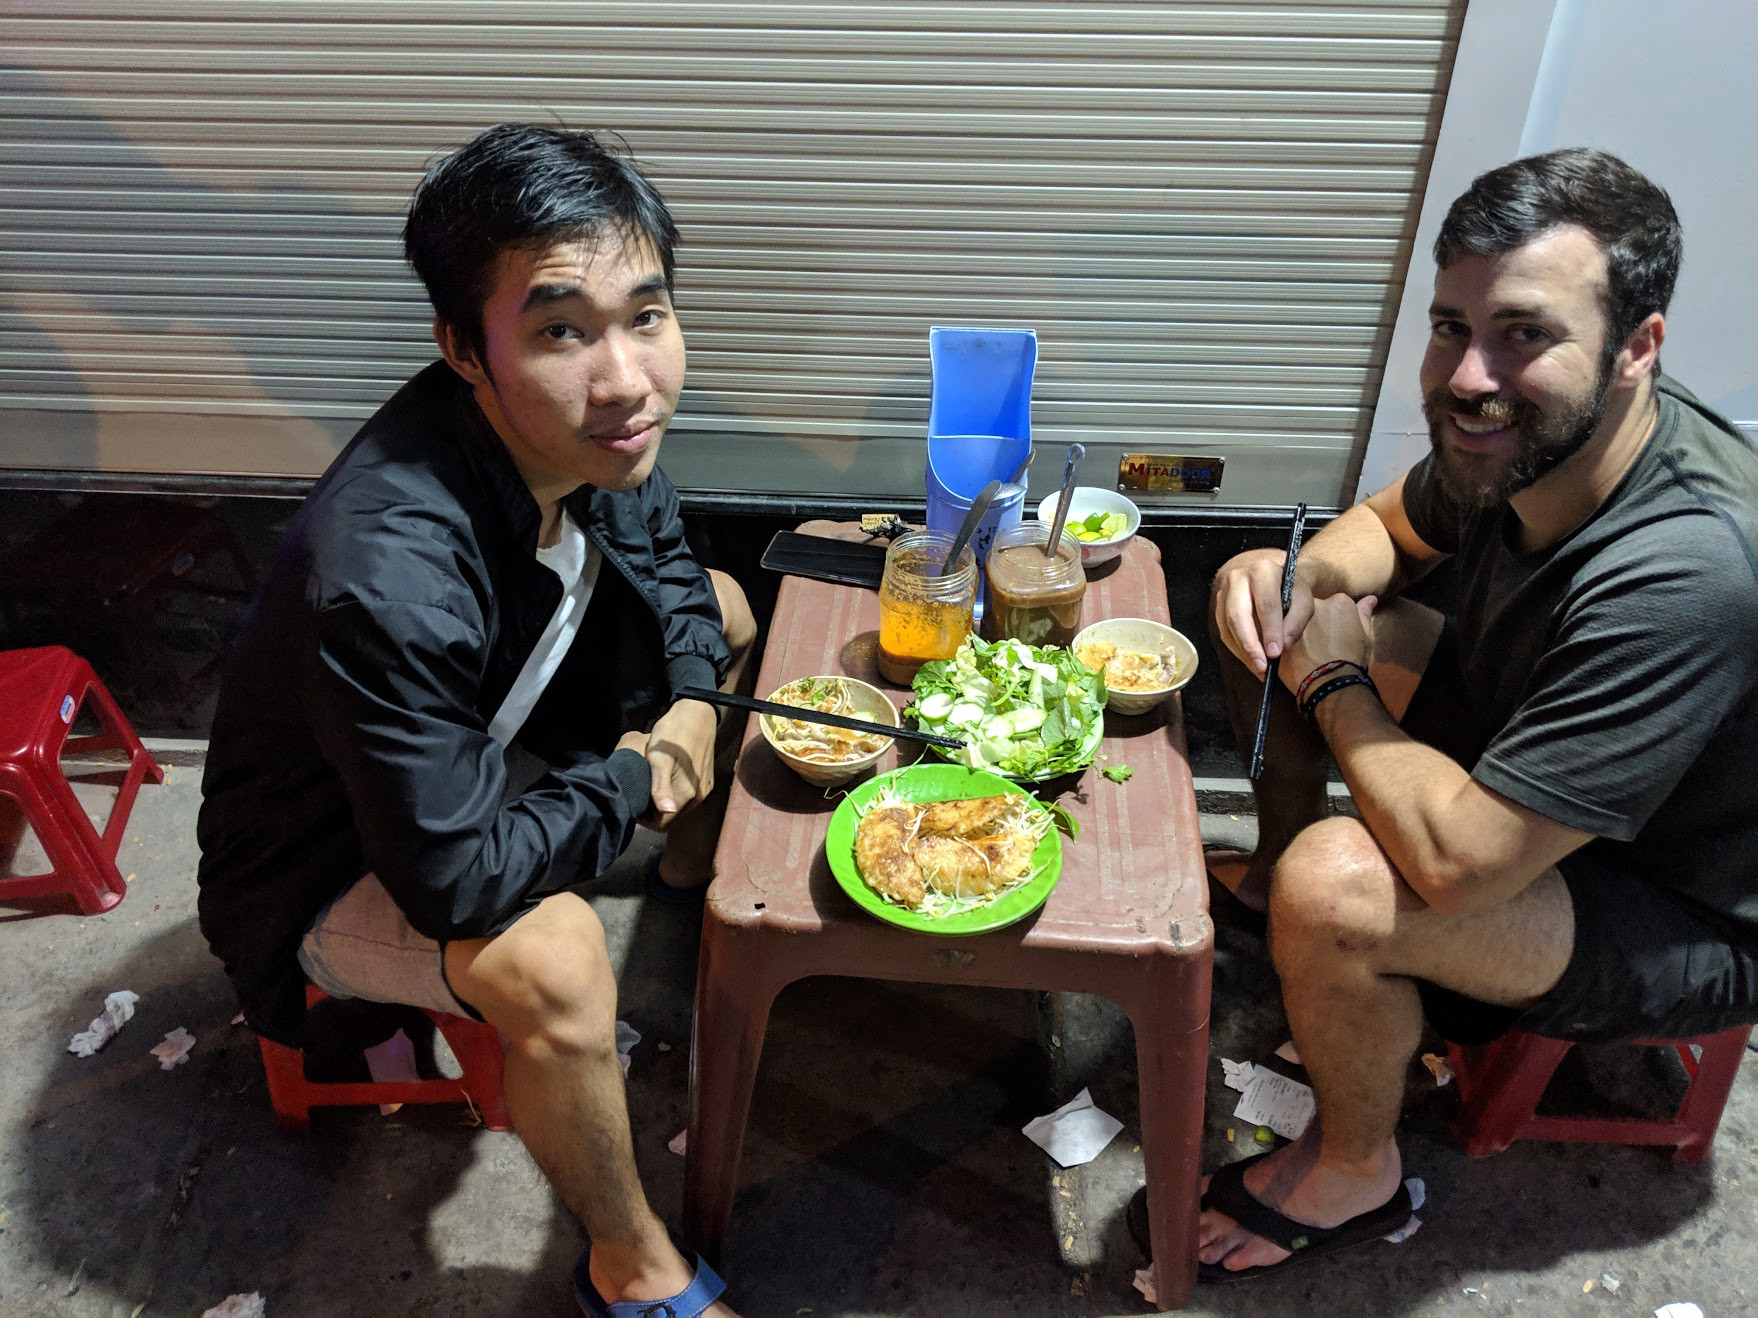 Eating Delicious meals in Vietnam. All ranging from $1-$2.